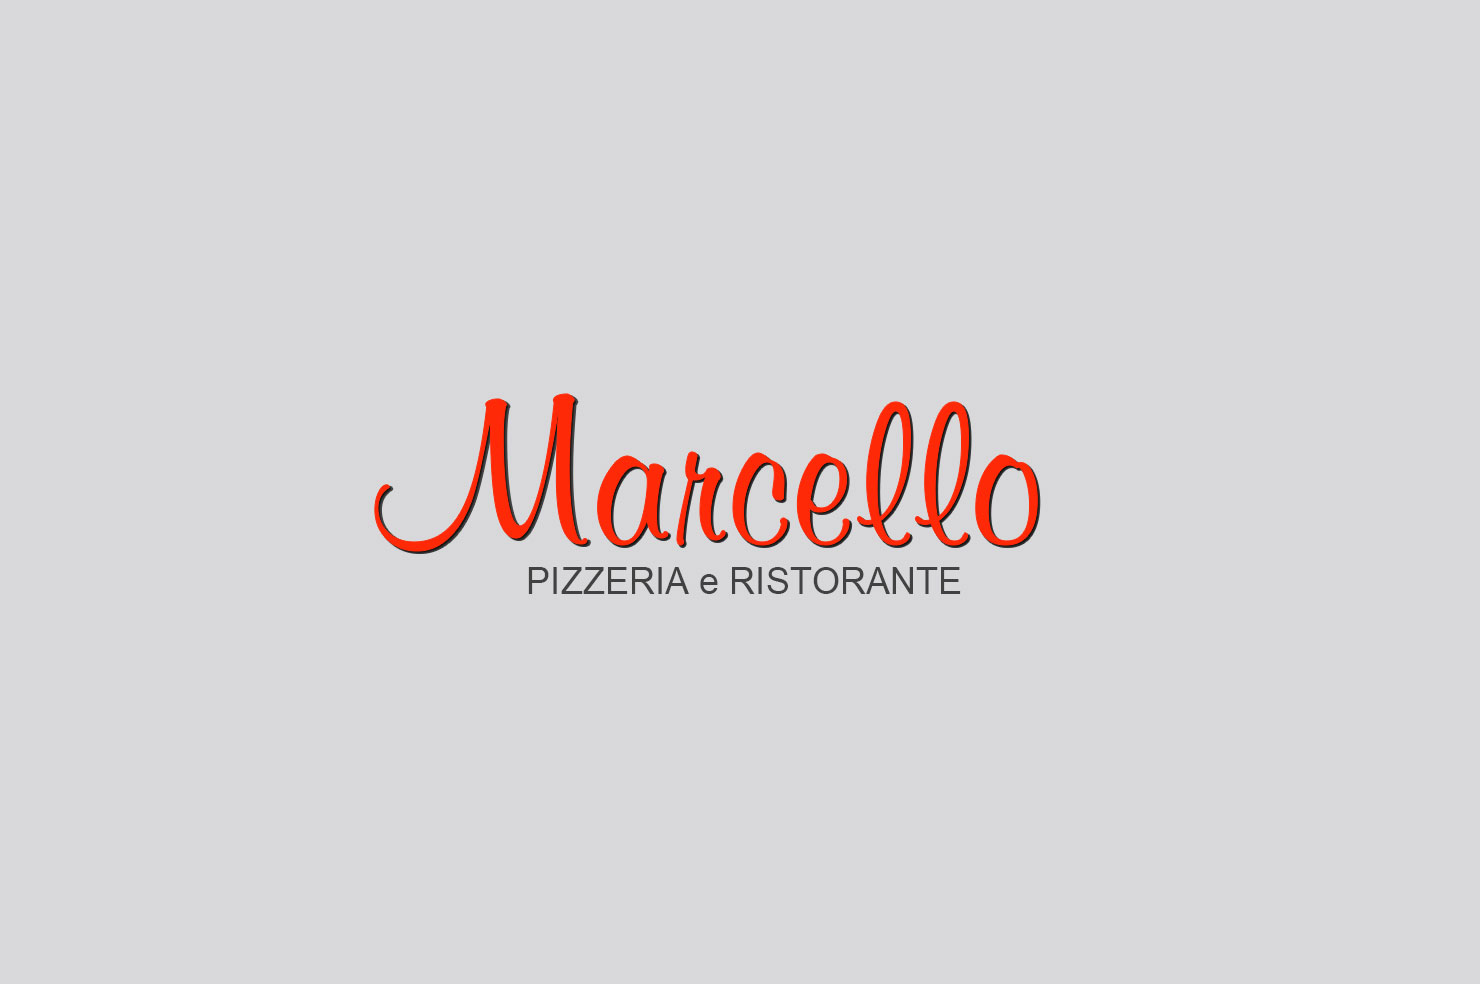 Marcello Pizzeria | Website